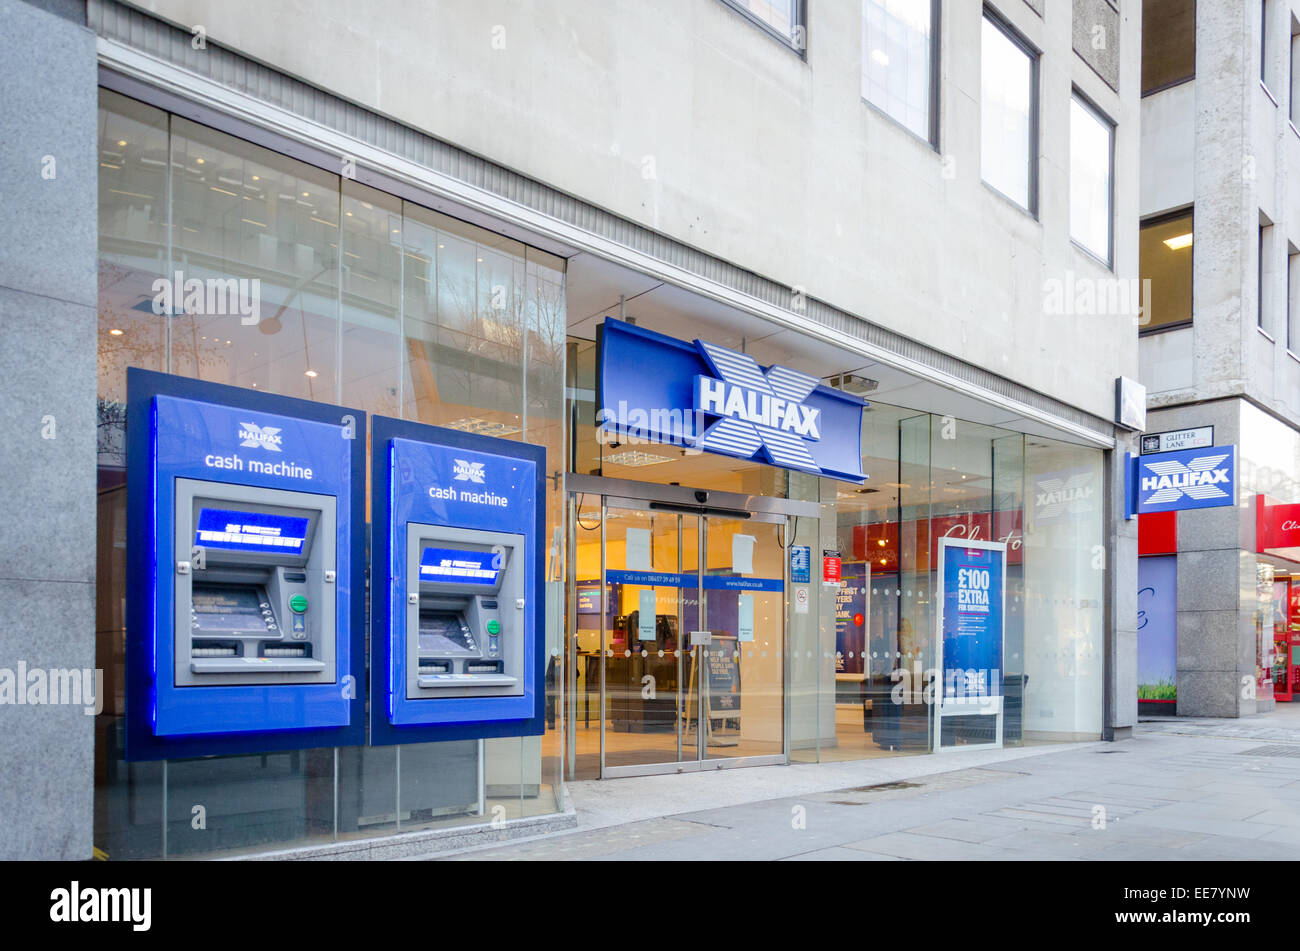 Succursale de Halifax Bank sur Cheapside, Londres, Royaume-Uni. Photo Stock